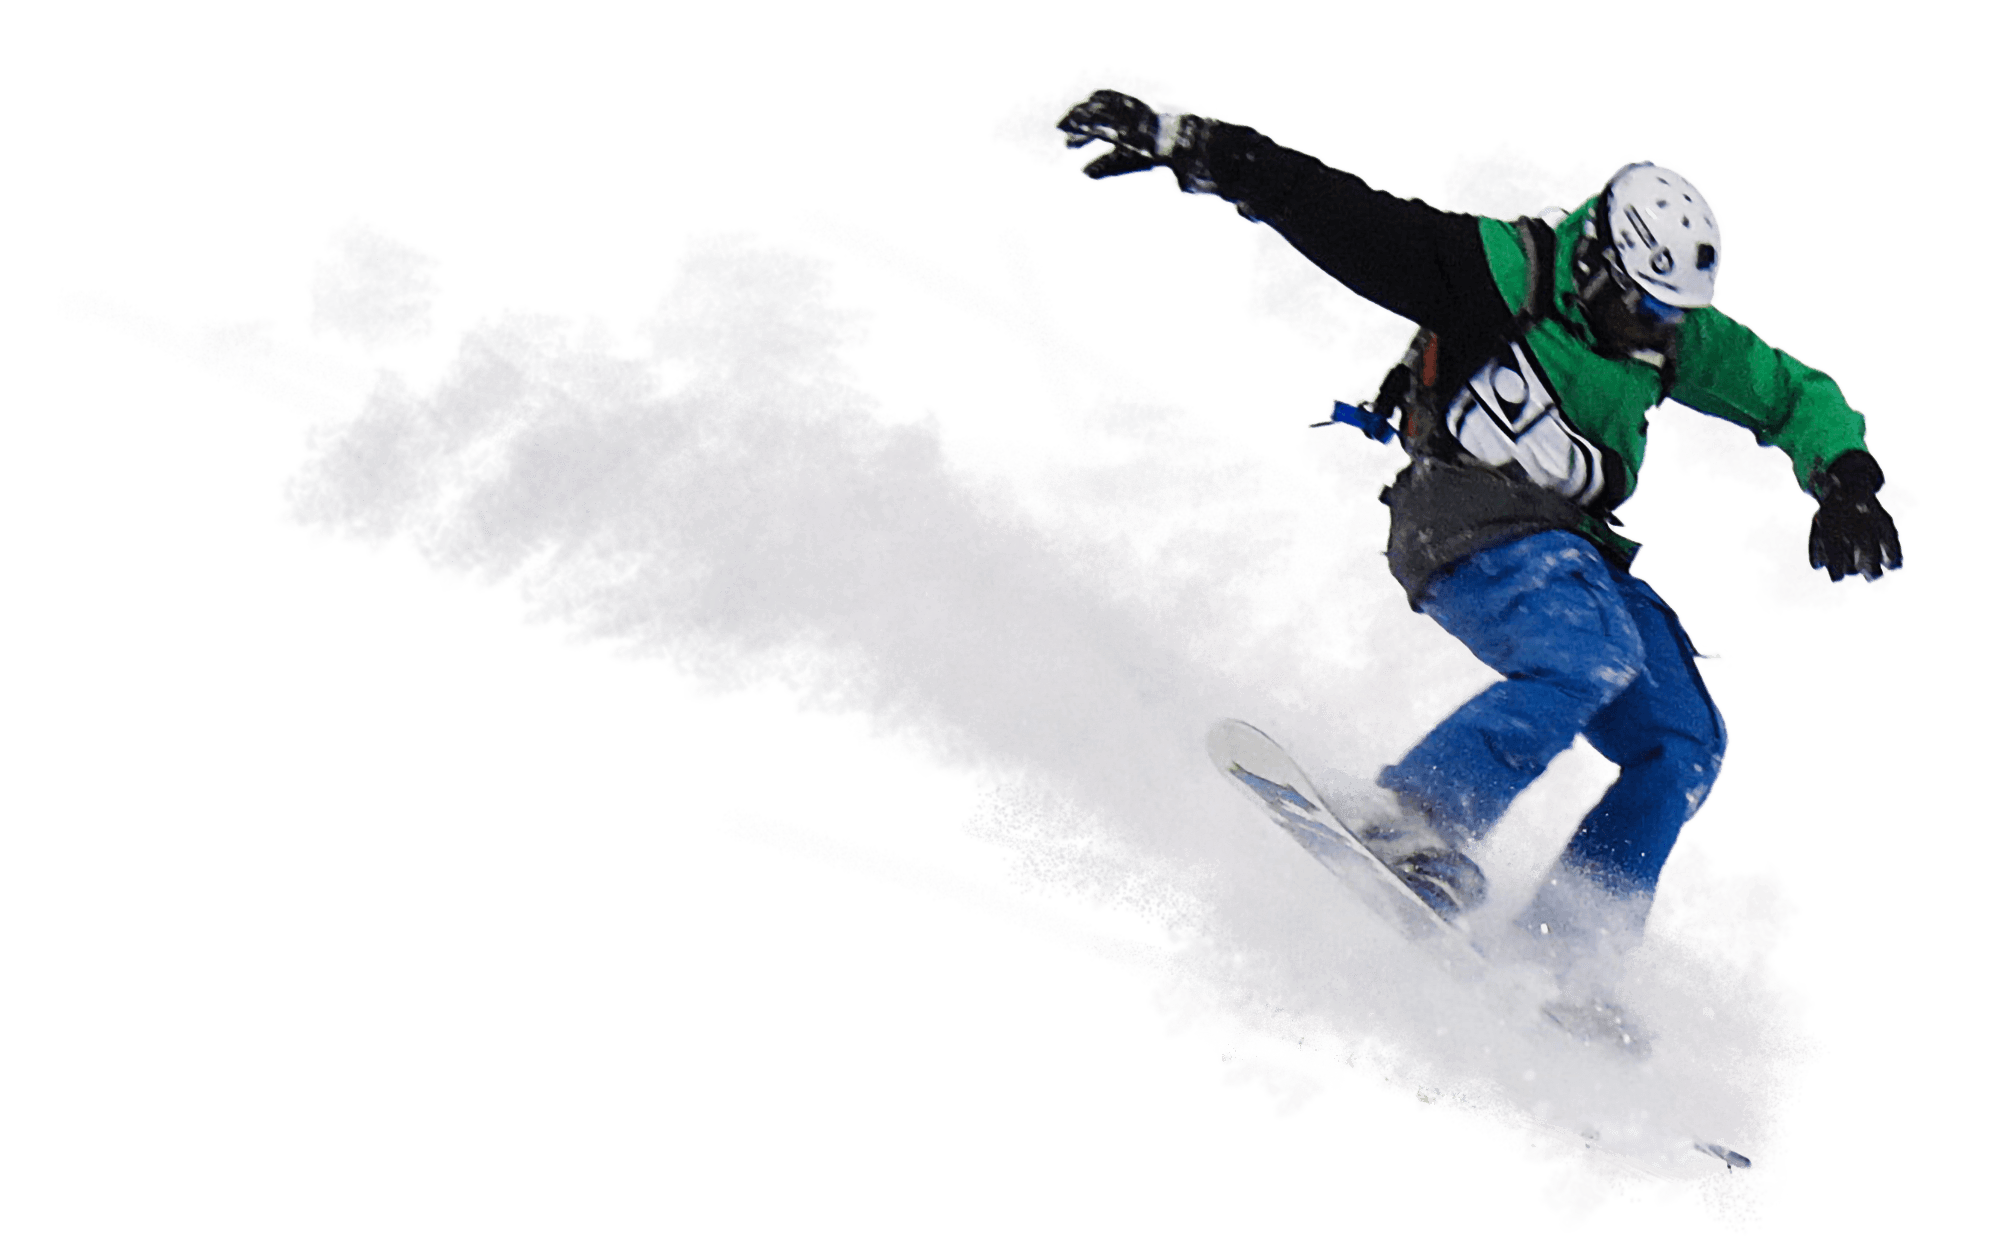 A snowboarder jumping.